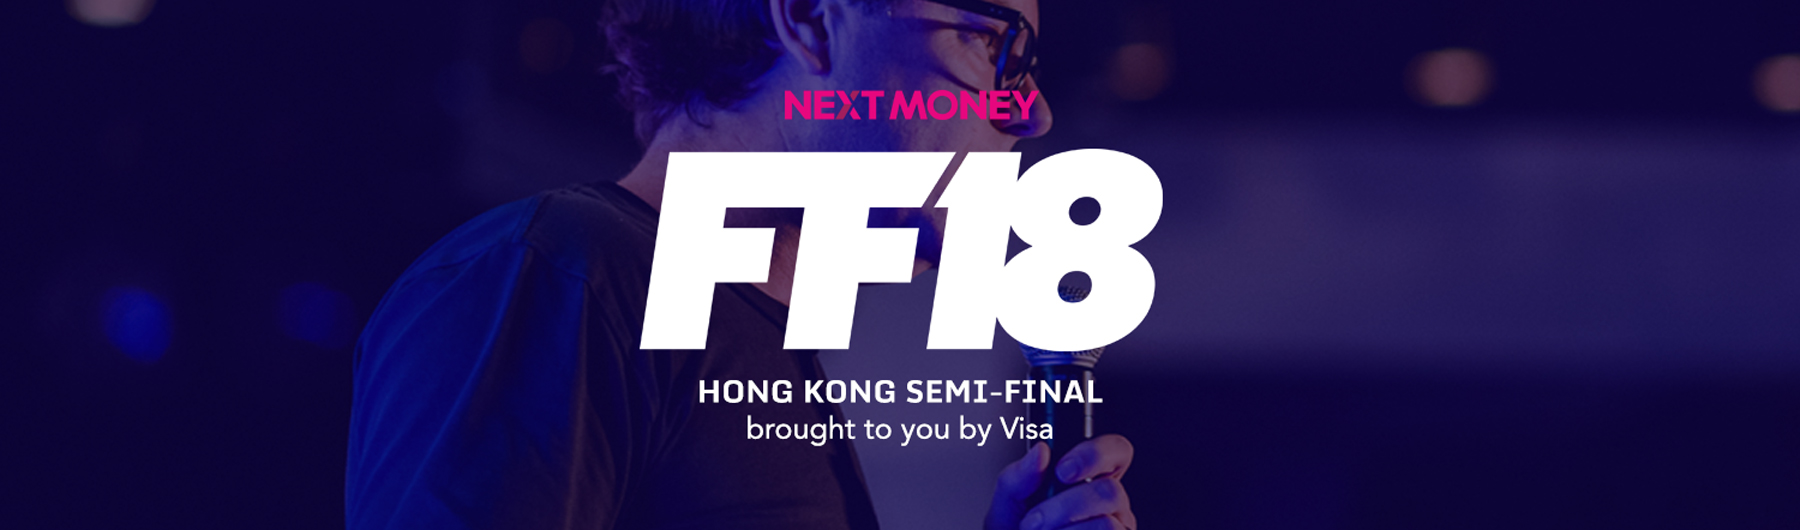 FF18 Hong Kong Semi-Final Fintech Pitch Competition